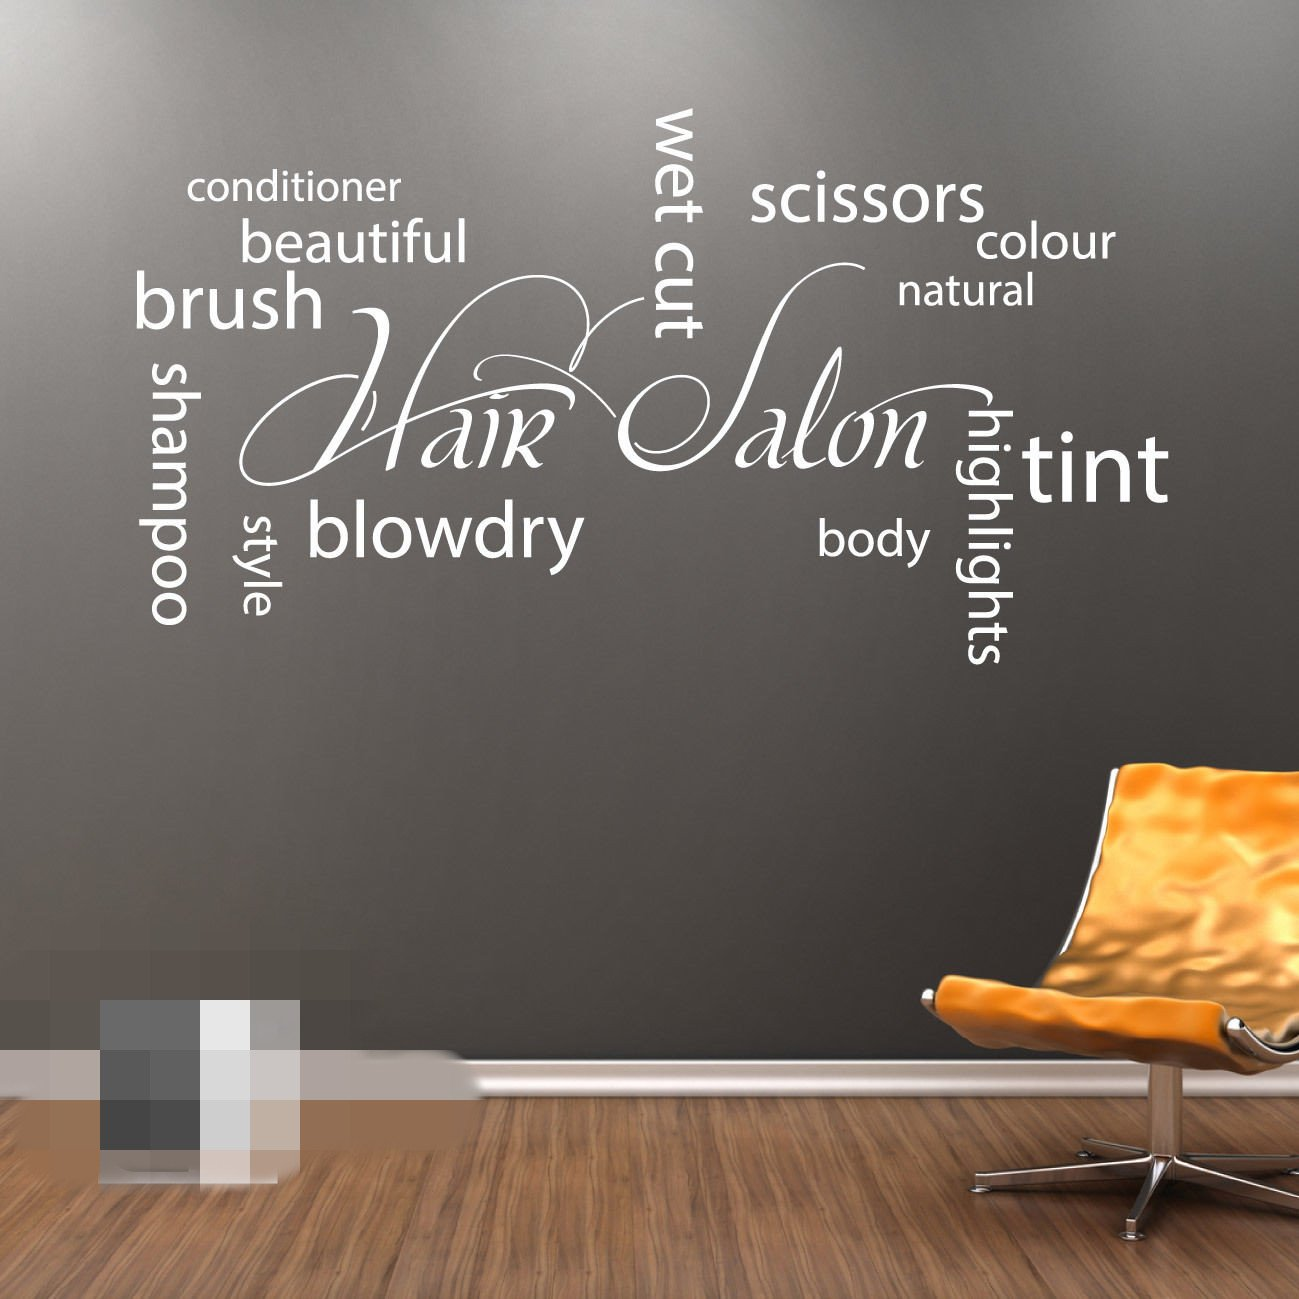 Amazoncom FAWER HAIR SALON Collage Wall Art Vinyl Sticker - Custom vinyl wall decals for hair salonvinyl wall decal hair salon stylist hairdresser barber shop